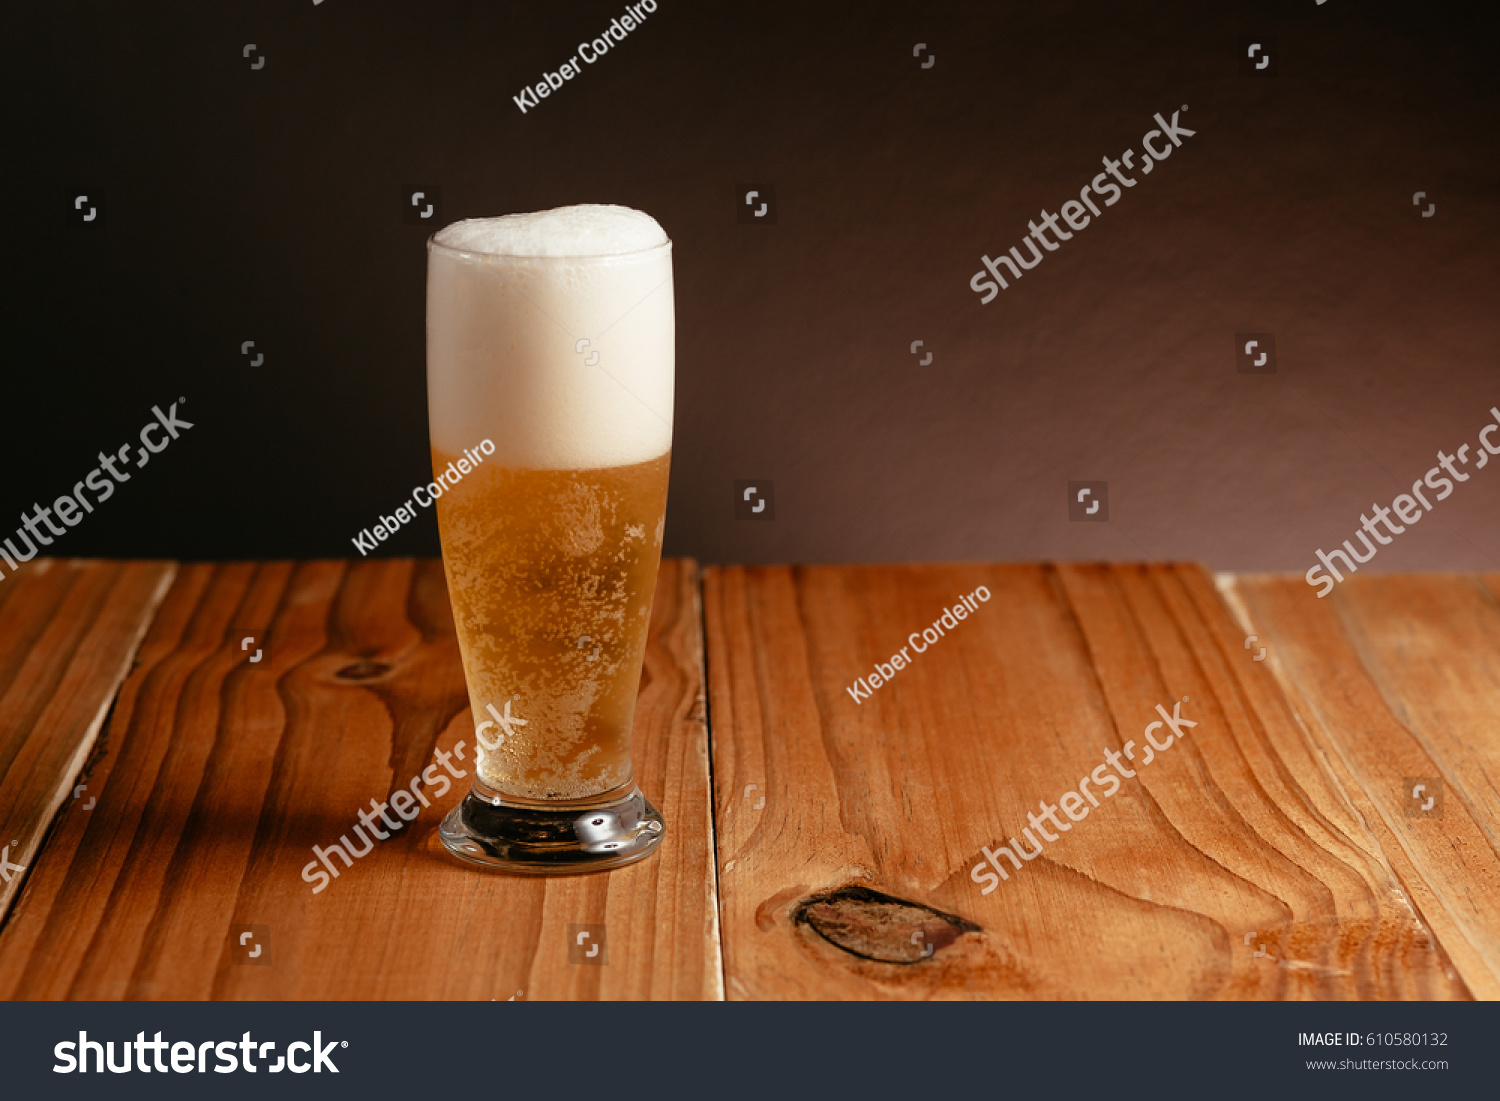 glass beer on wood - photo #12